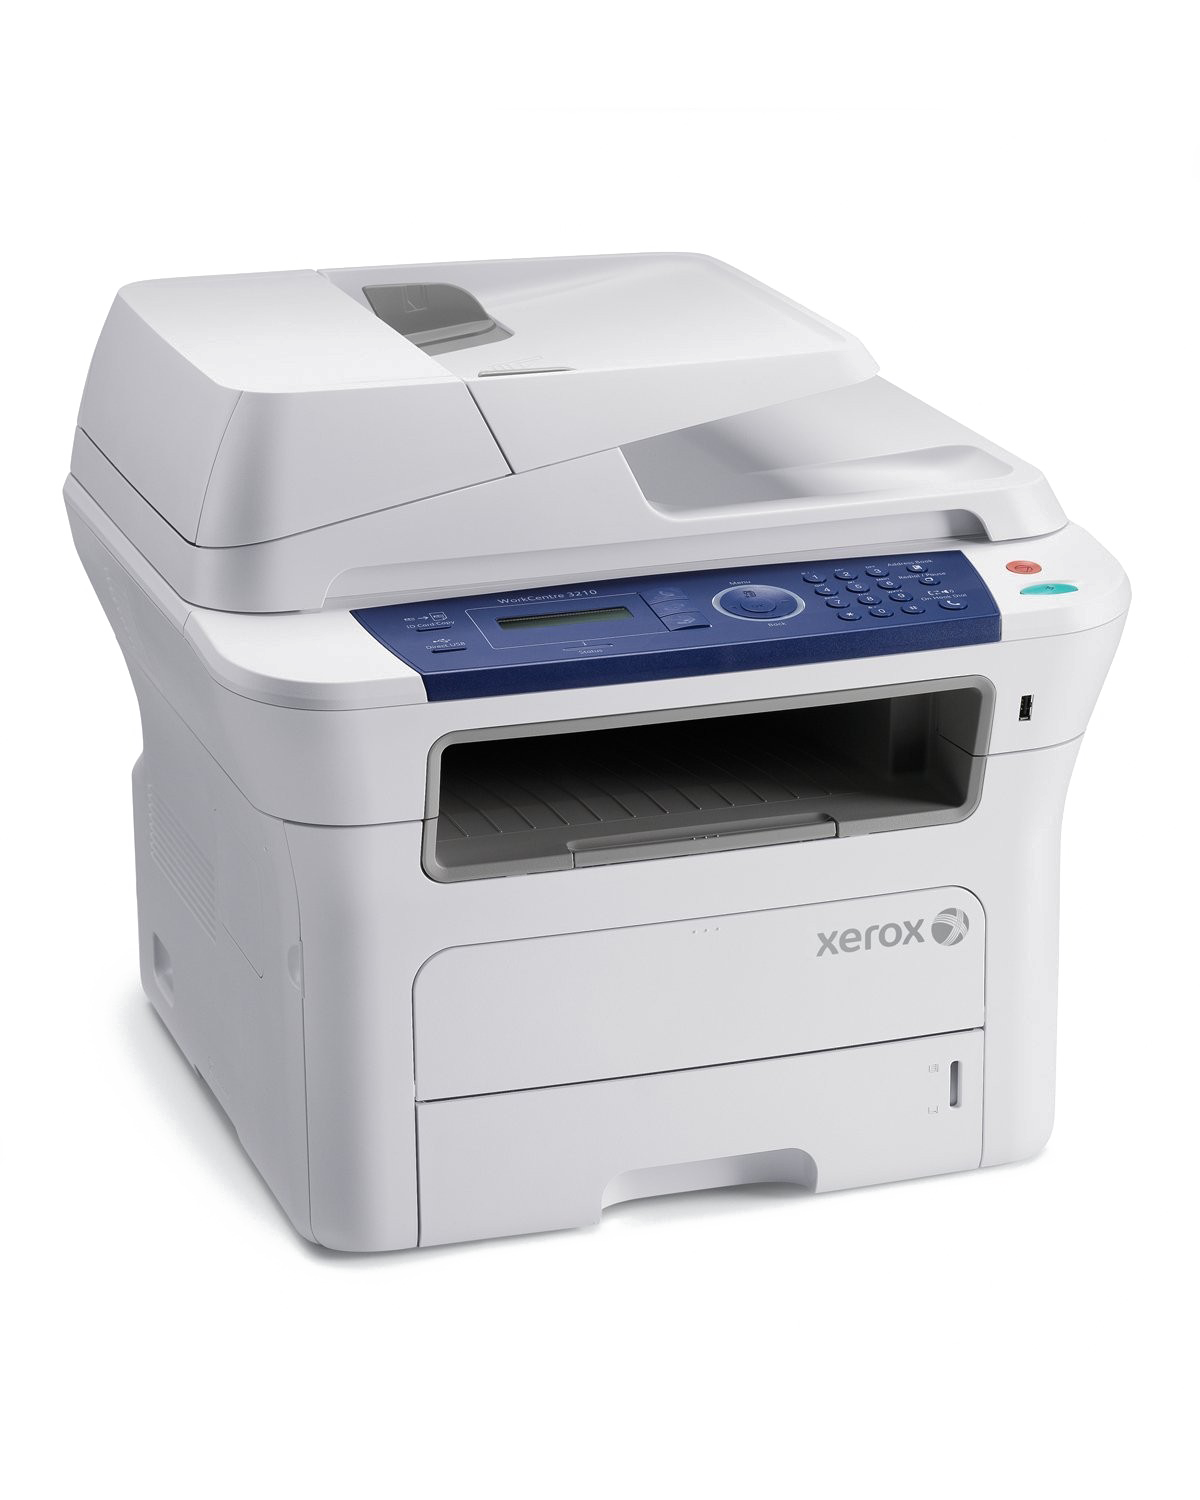 Xerox Machine PNG Images Transparent Free Download.